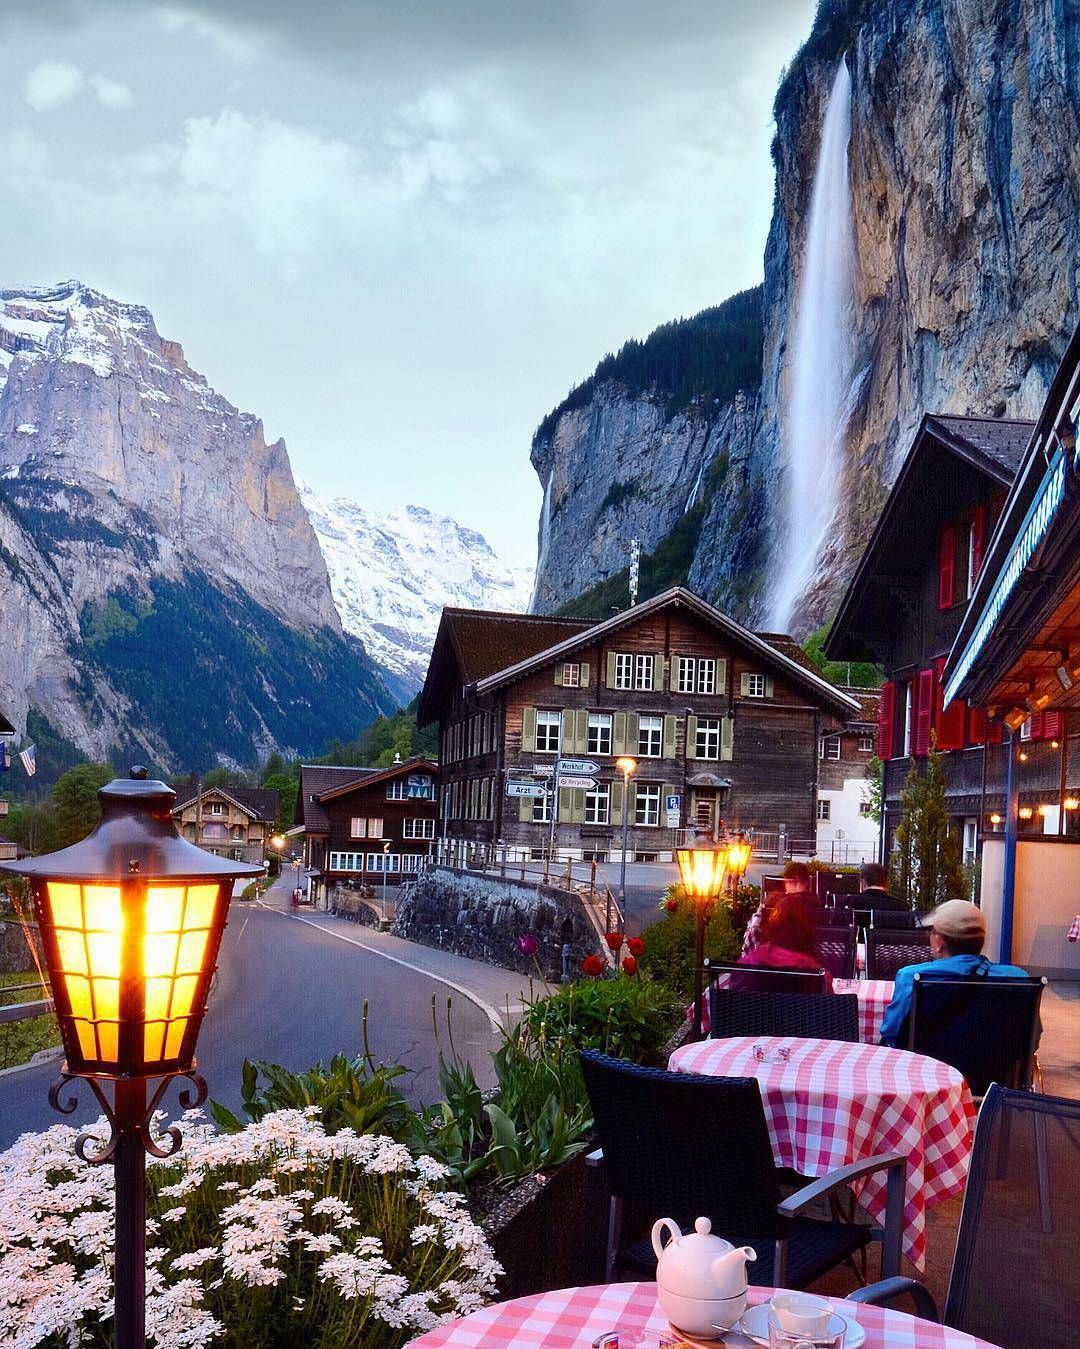 hotel jungfrau lauterbrunnen in switzerland by senai senna. Black Bedroom Furniture Sets. Home Design Ideas